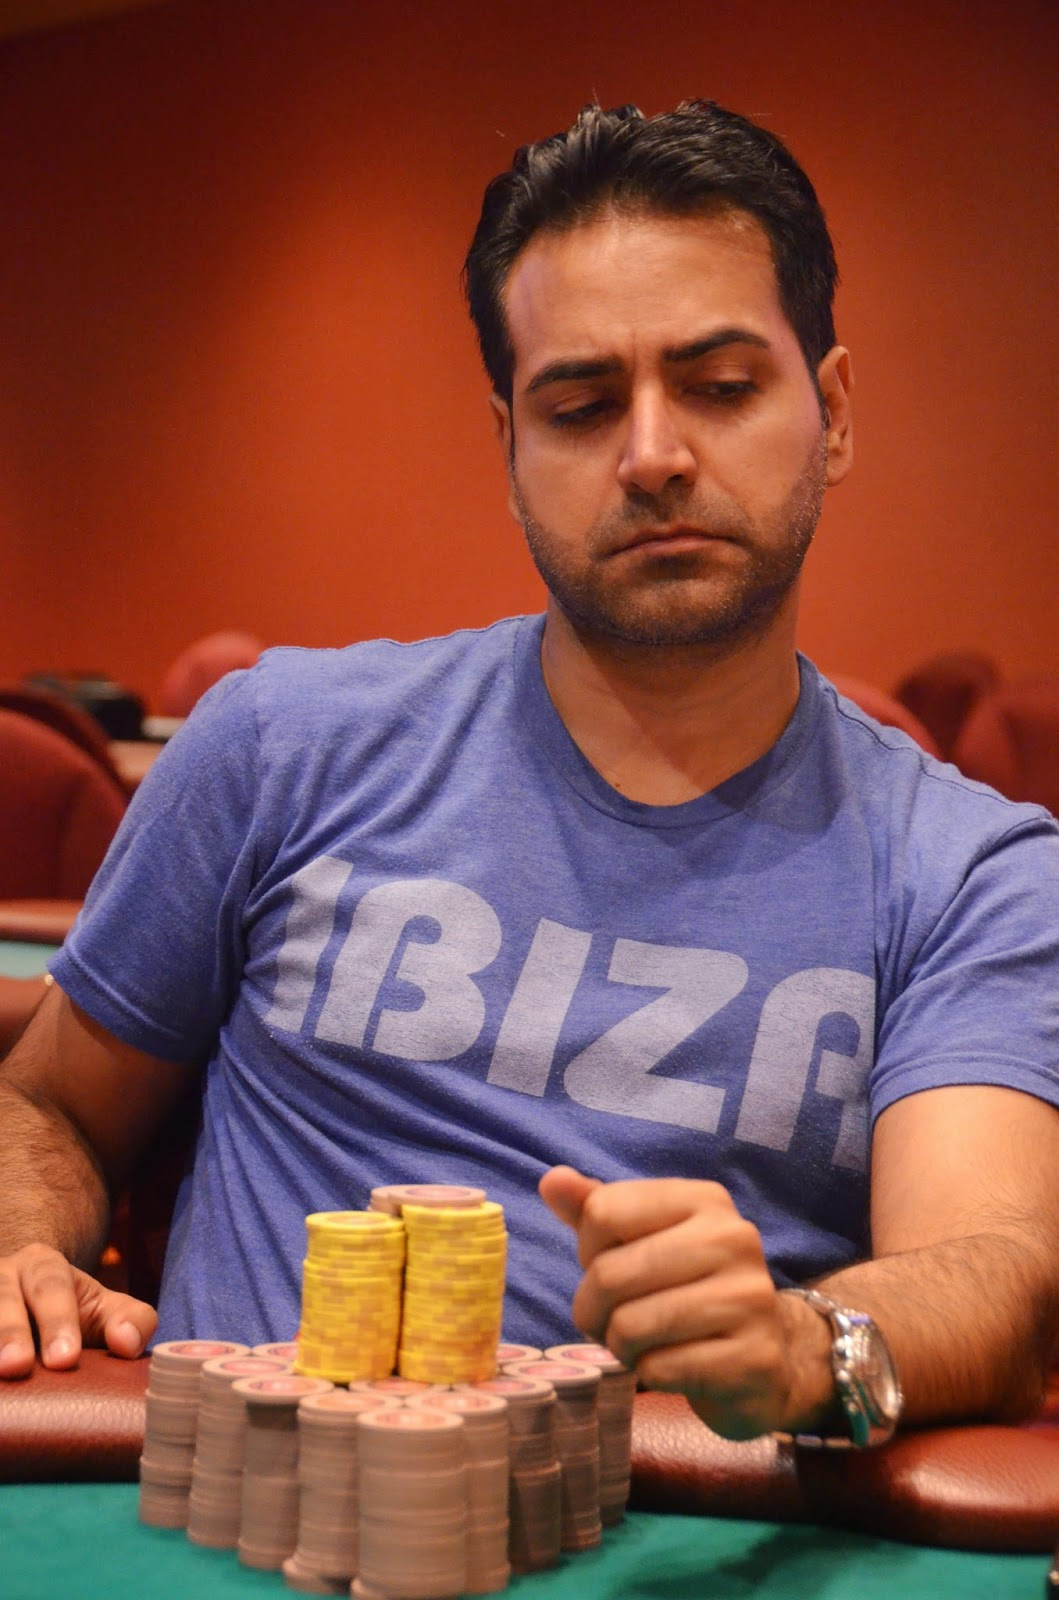 Parx big stax vii big stax 500 day 3 5th place pahuja 18 020 for Parx poker room live game report